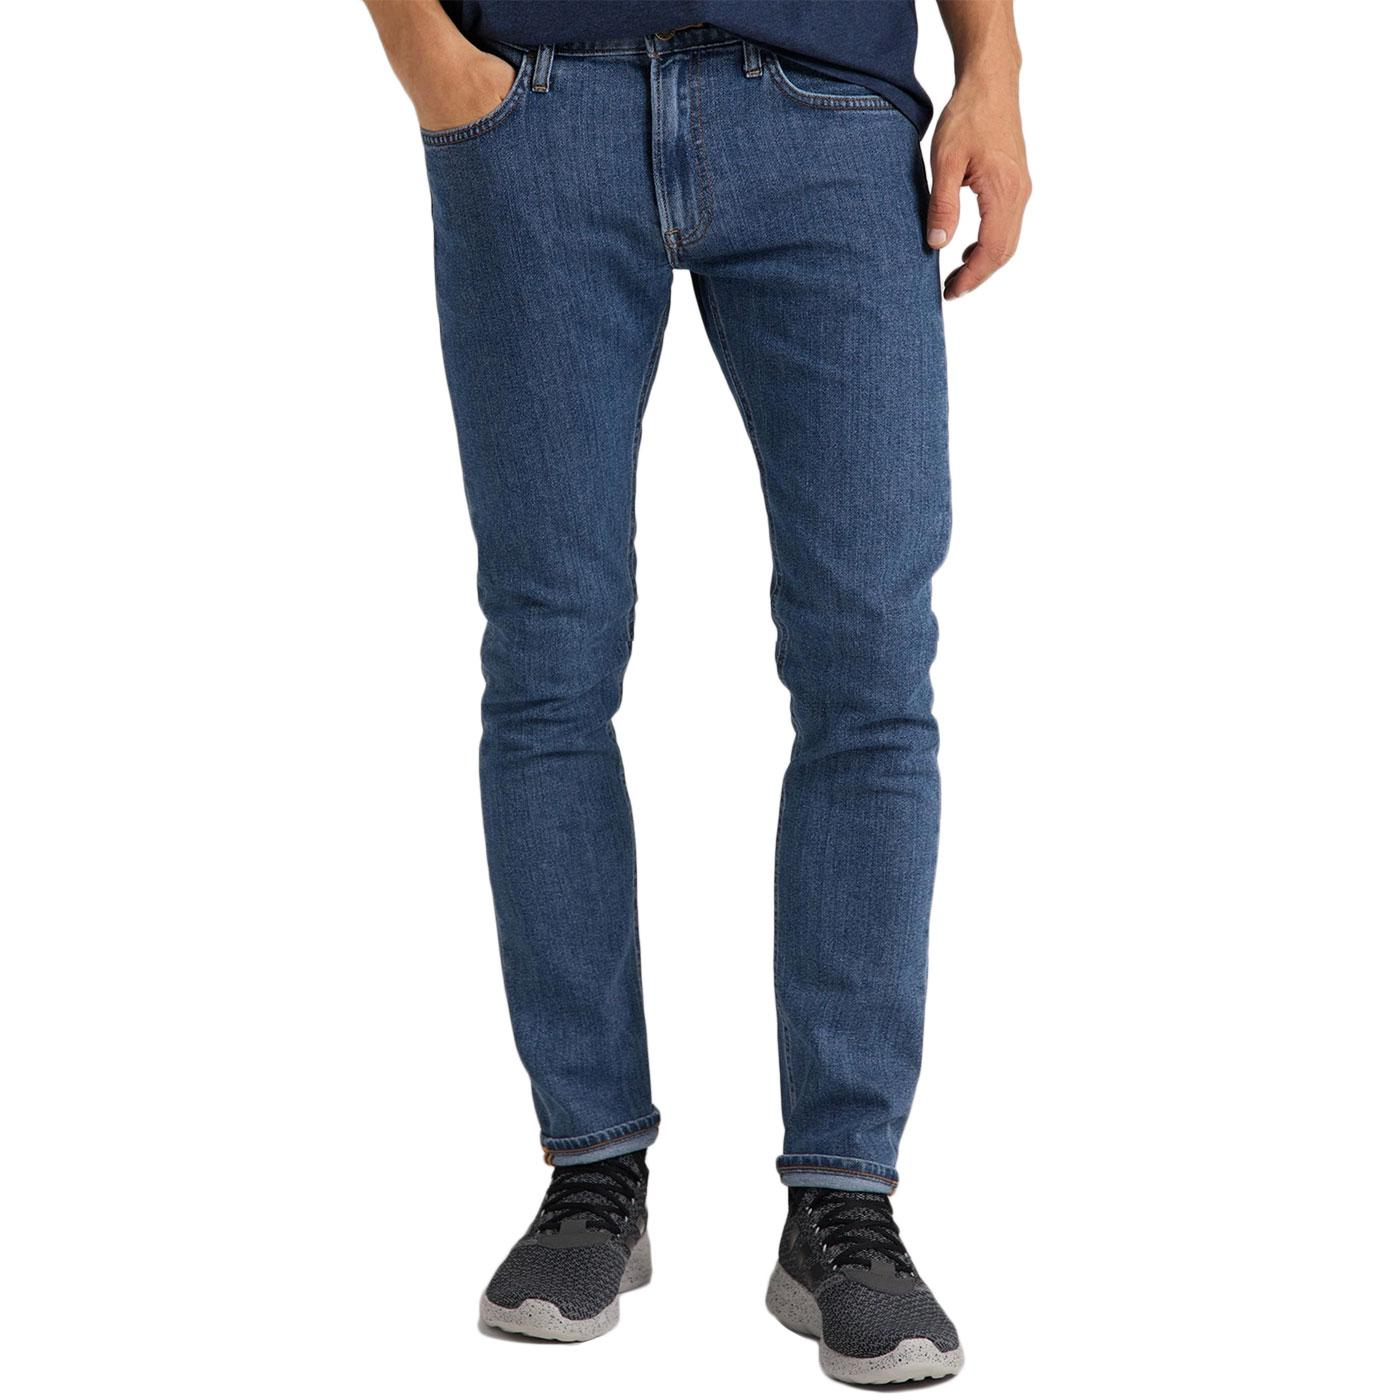 Luke LEE JEANS Retro Slim Tapered Jeans MID STONE